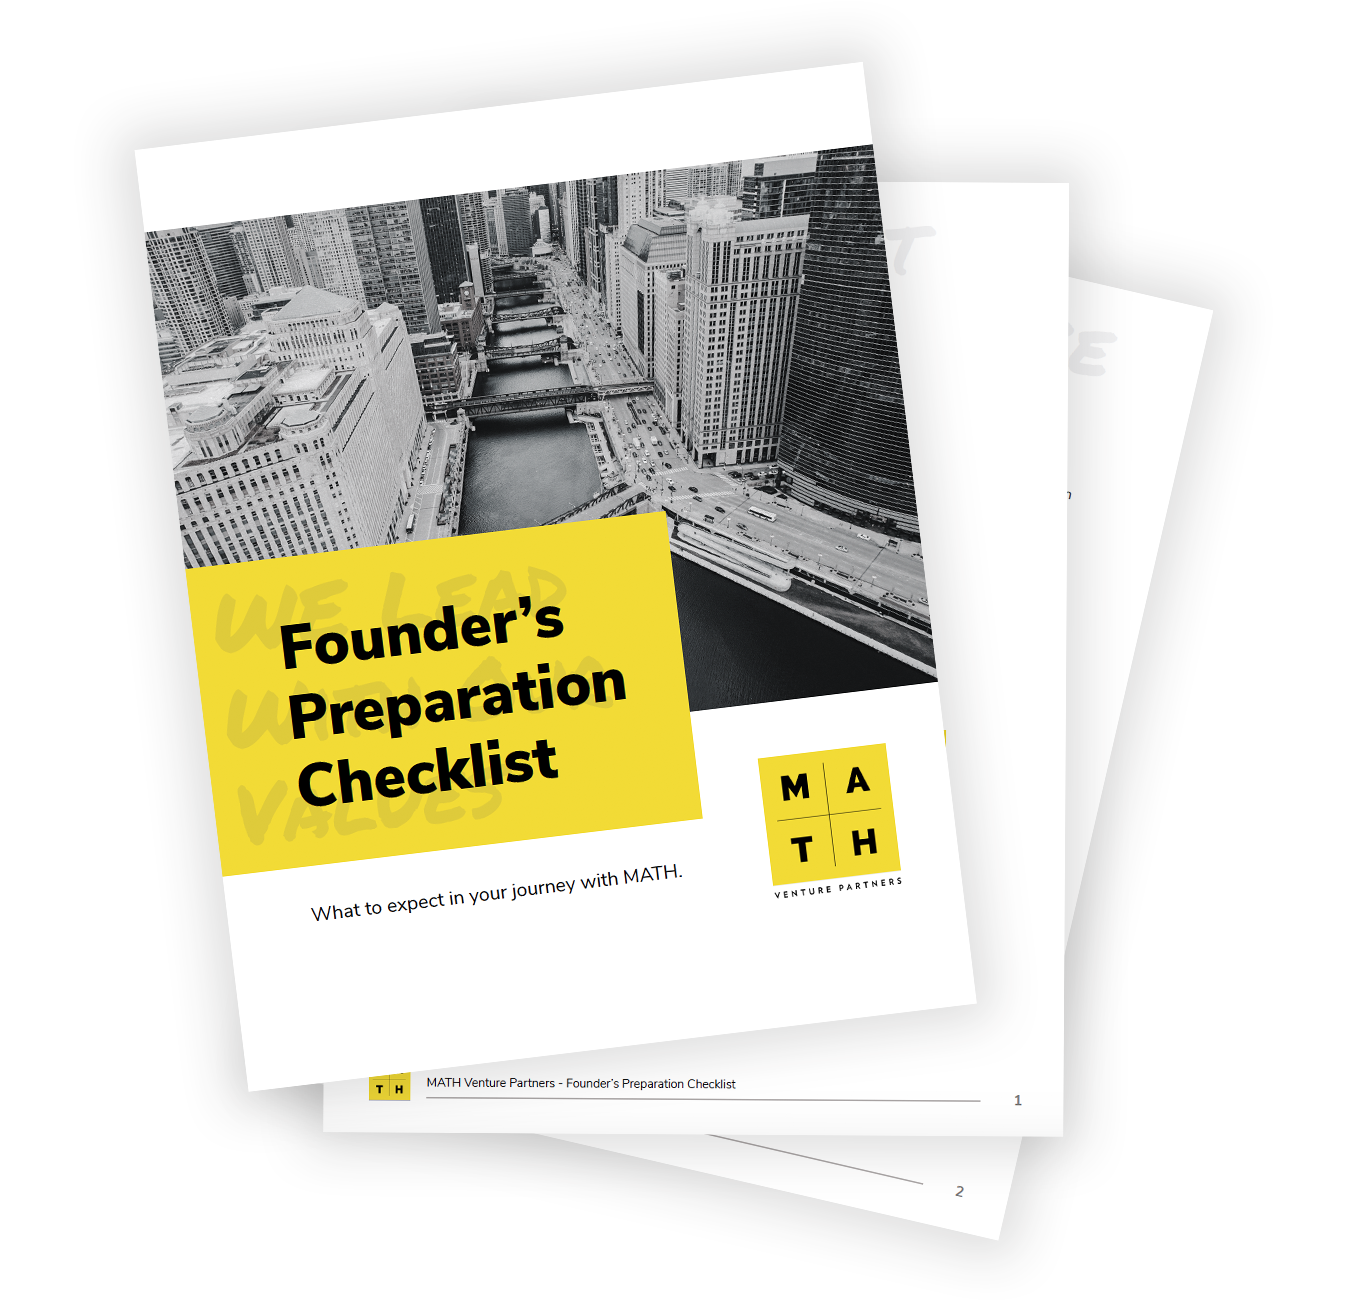 Founder's Preparation Checklist - What to expect in your journey with MATH.